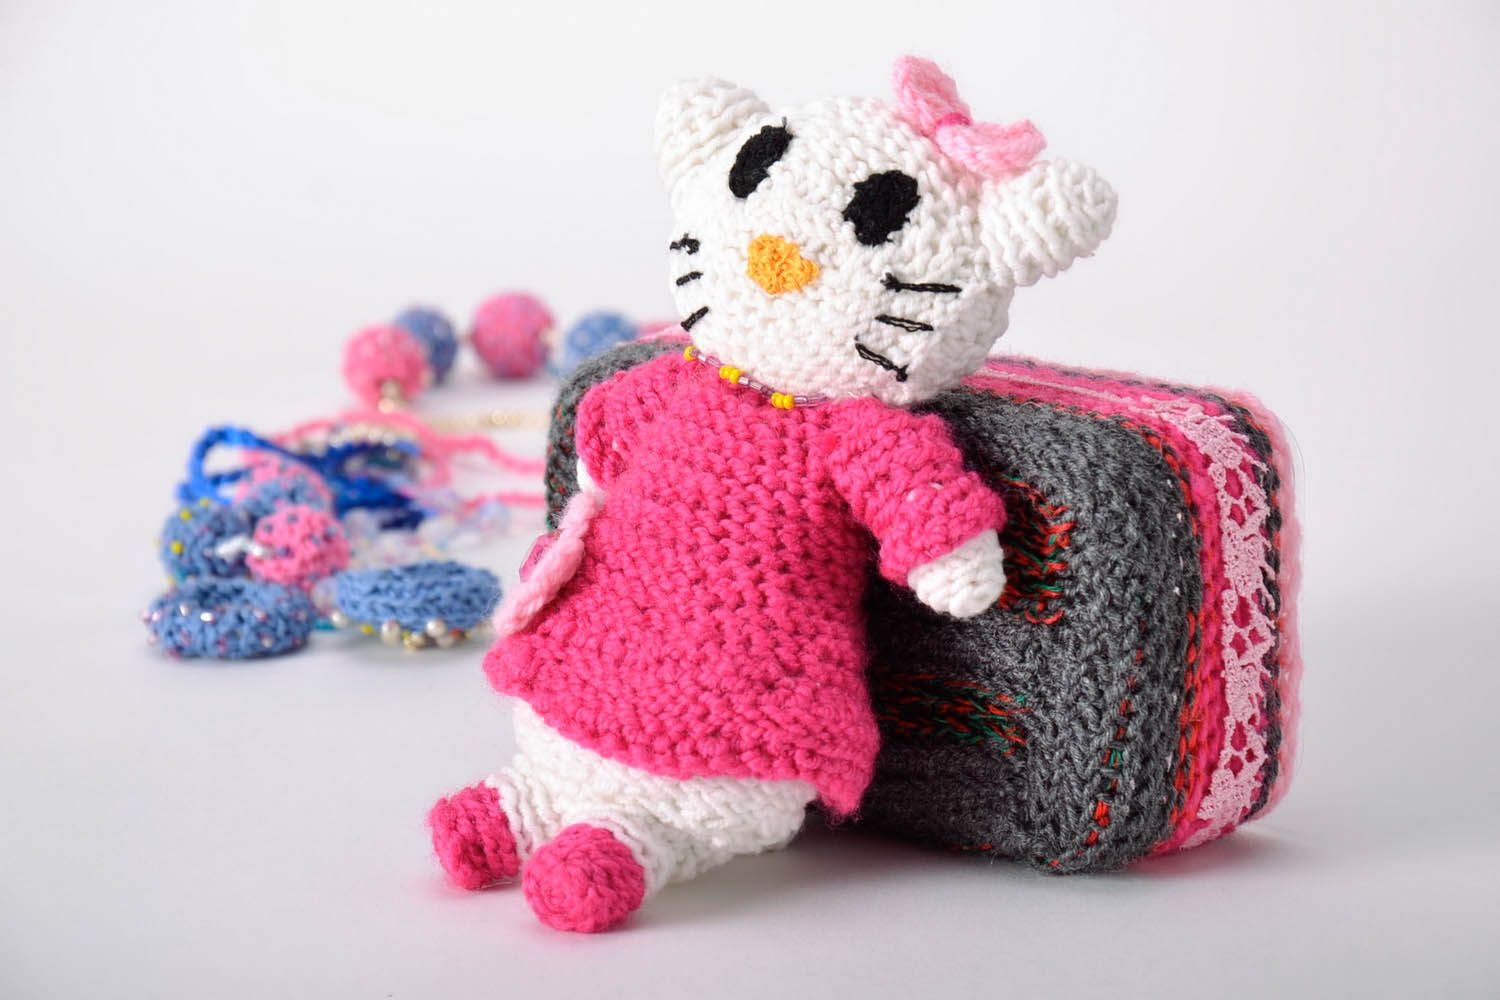 Toy crocheted around with wool threads photo 1